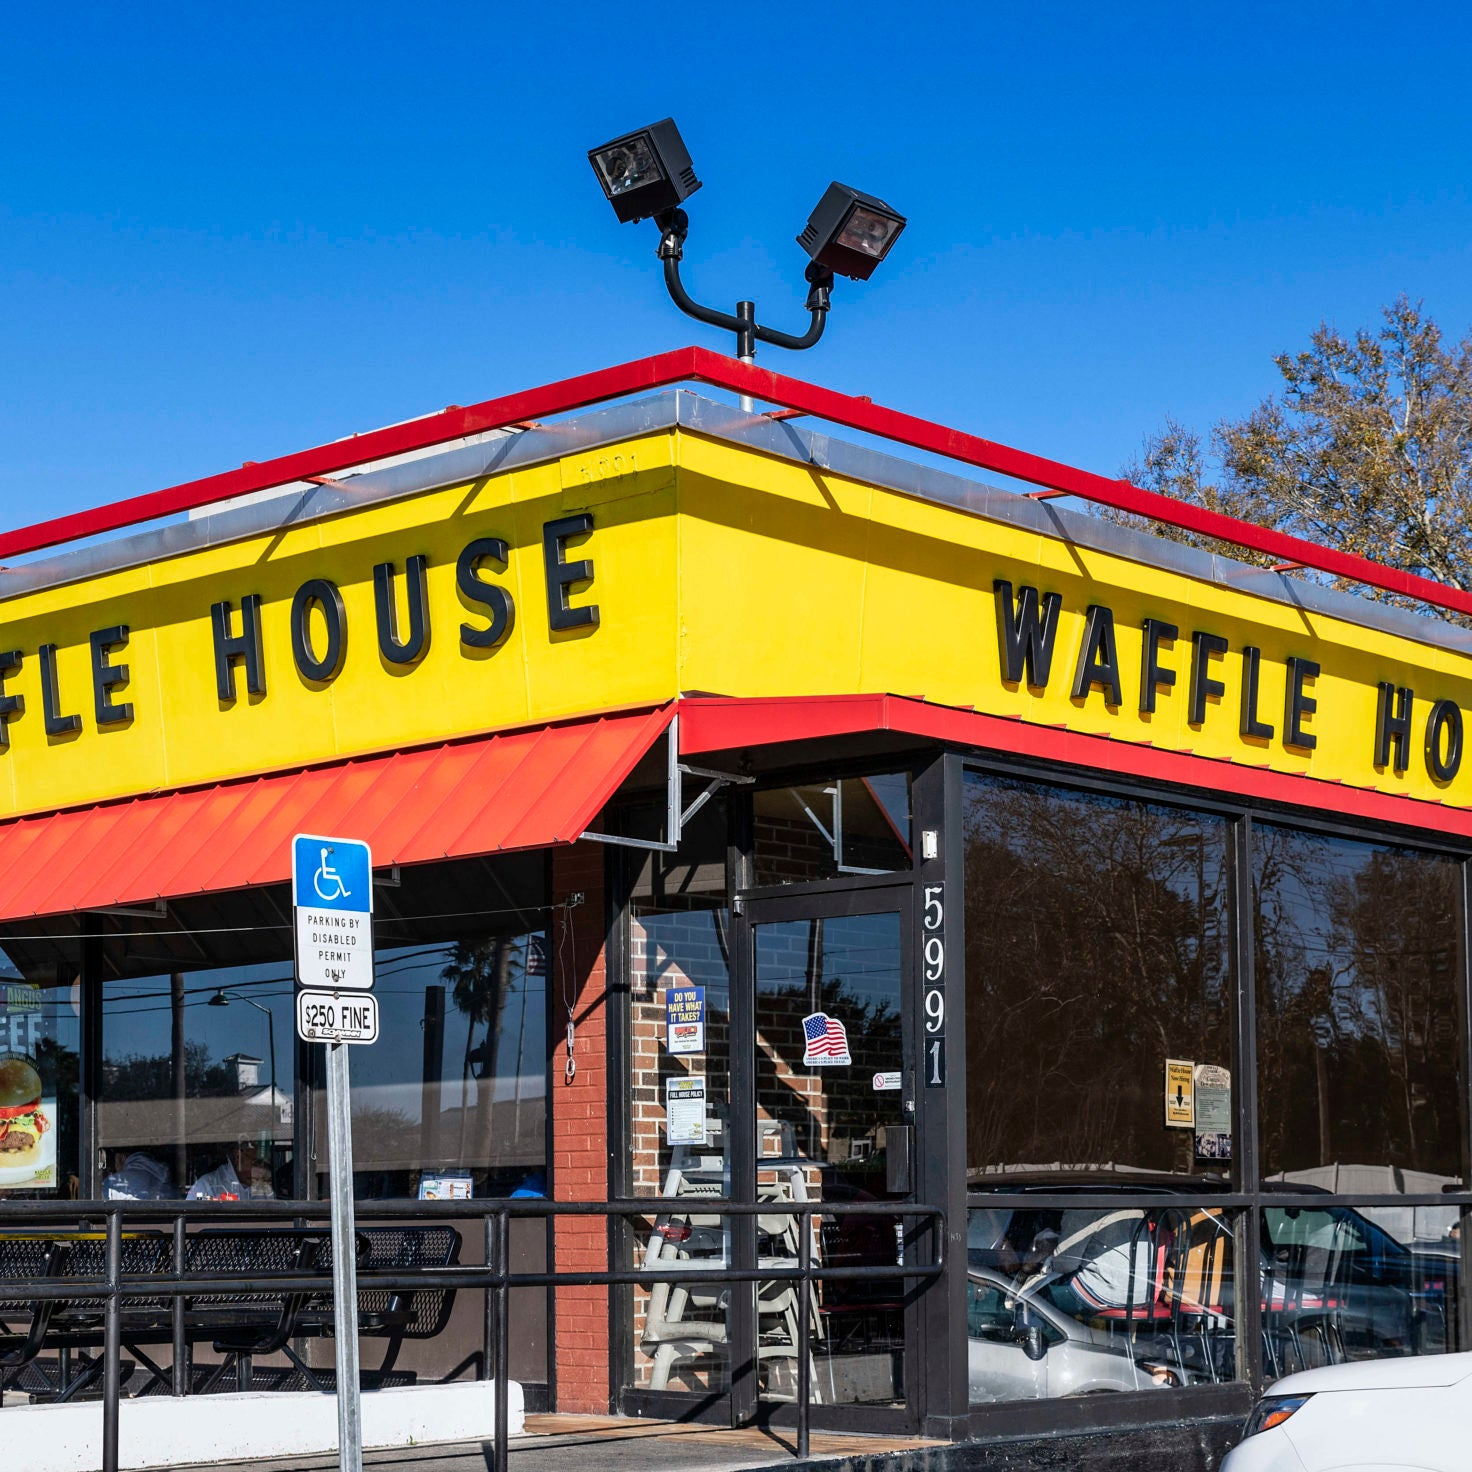 Black Woman Manhandled By Police In Alabama Waffle House Sues Restaurant